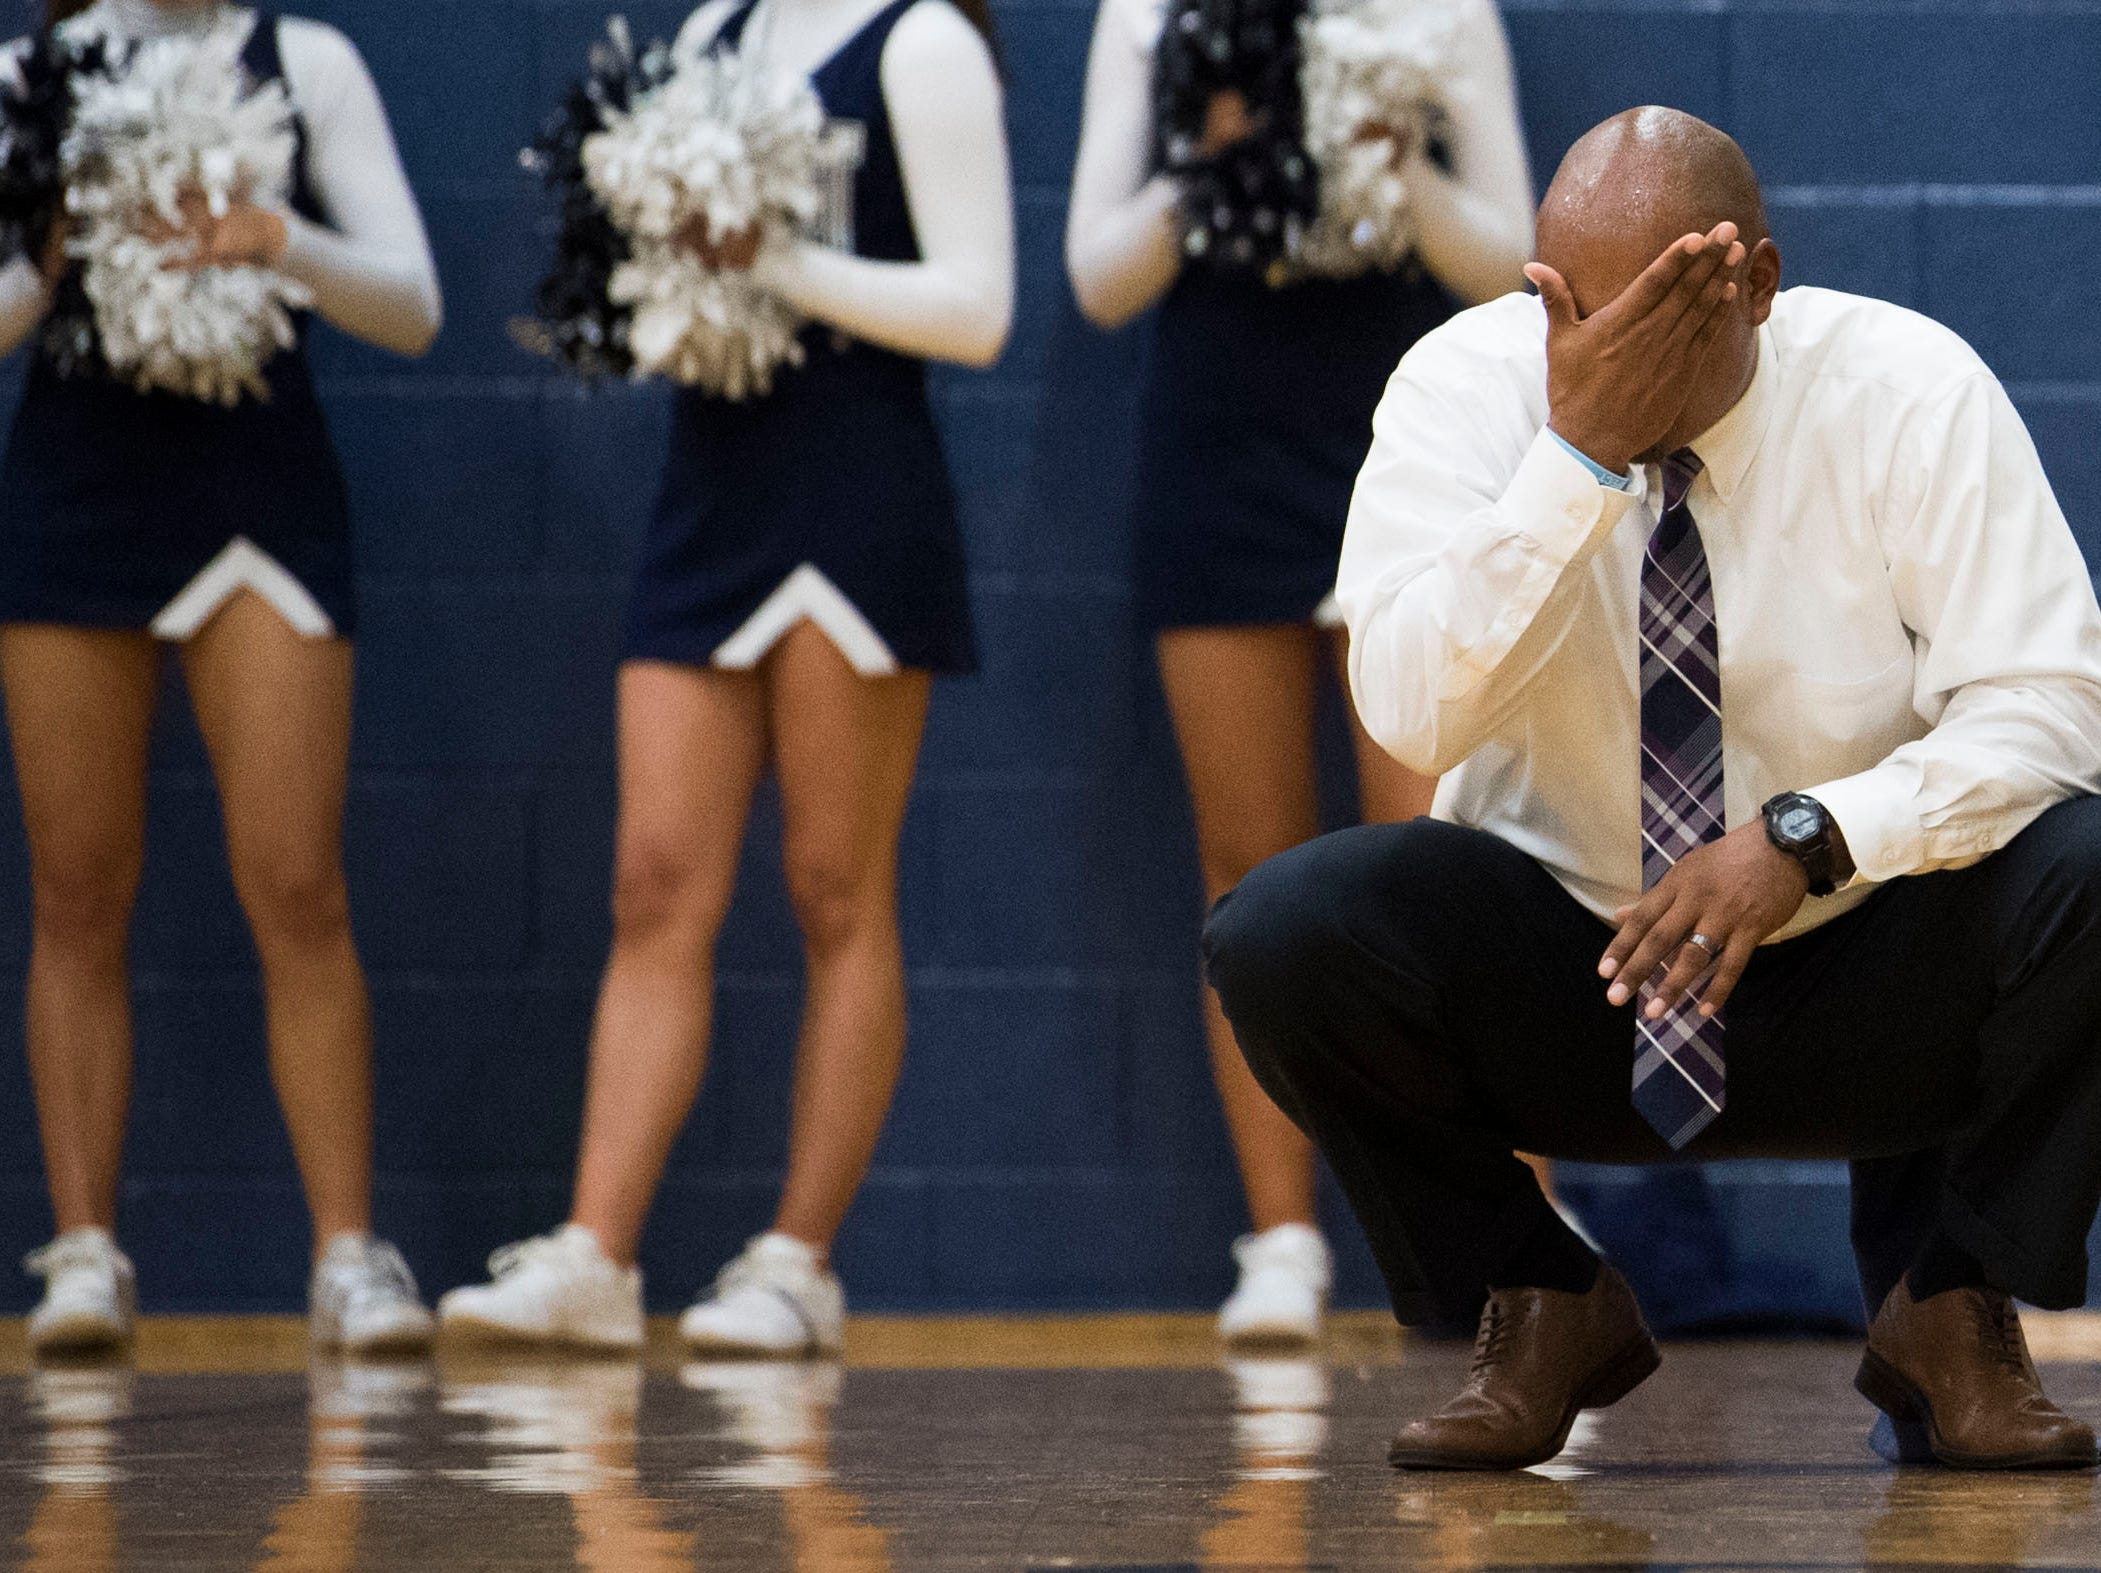 Farragut coach Jon Higgins reacts during a high school basketball game between Maryville and Farragut at Farragut, Friday, Jan. 11, 2019.